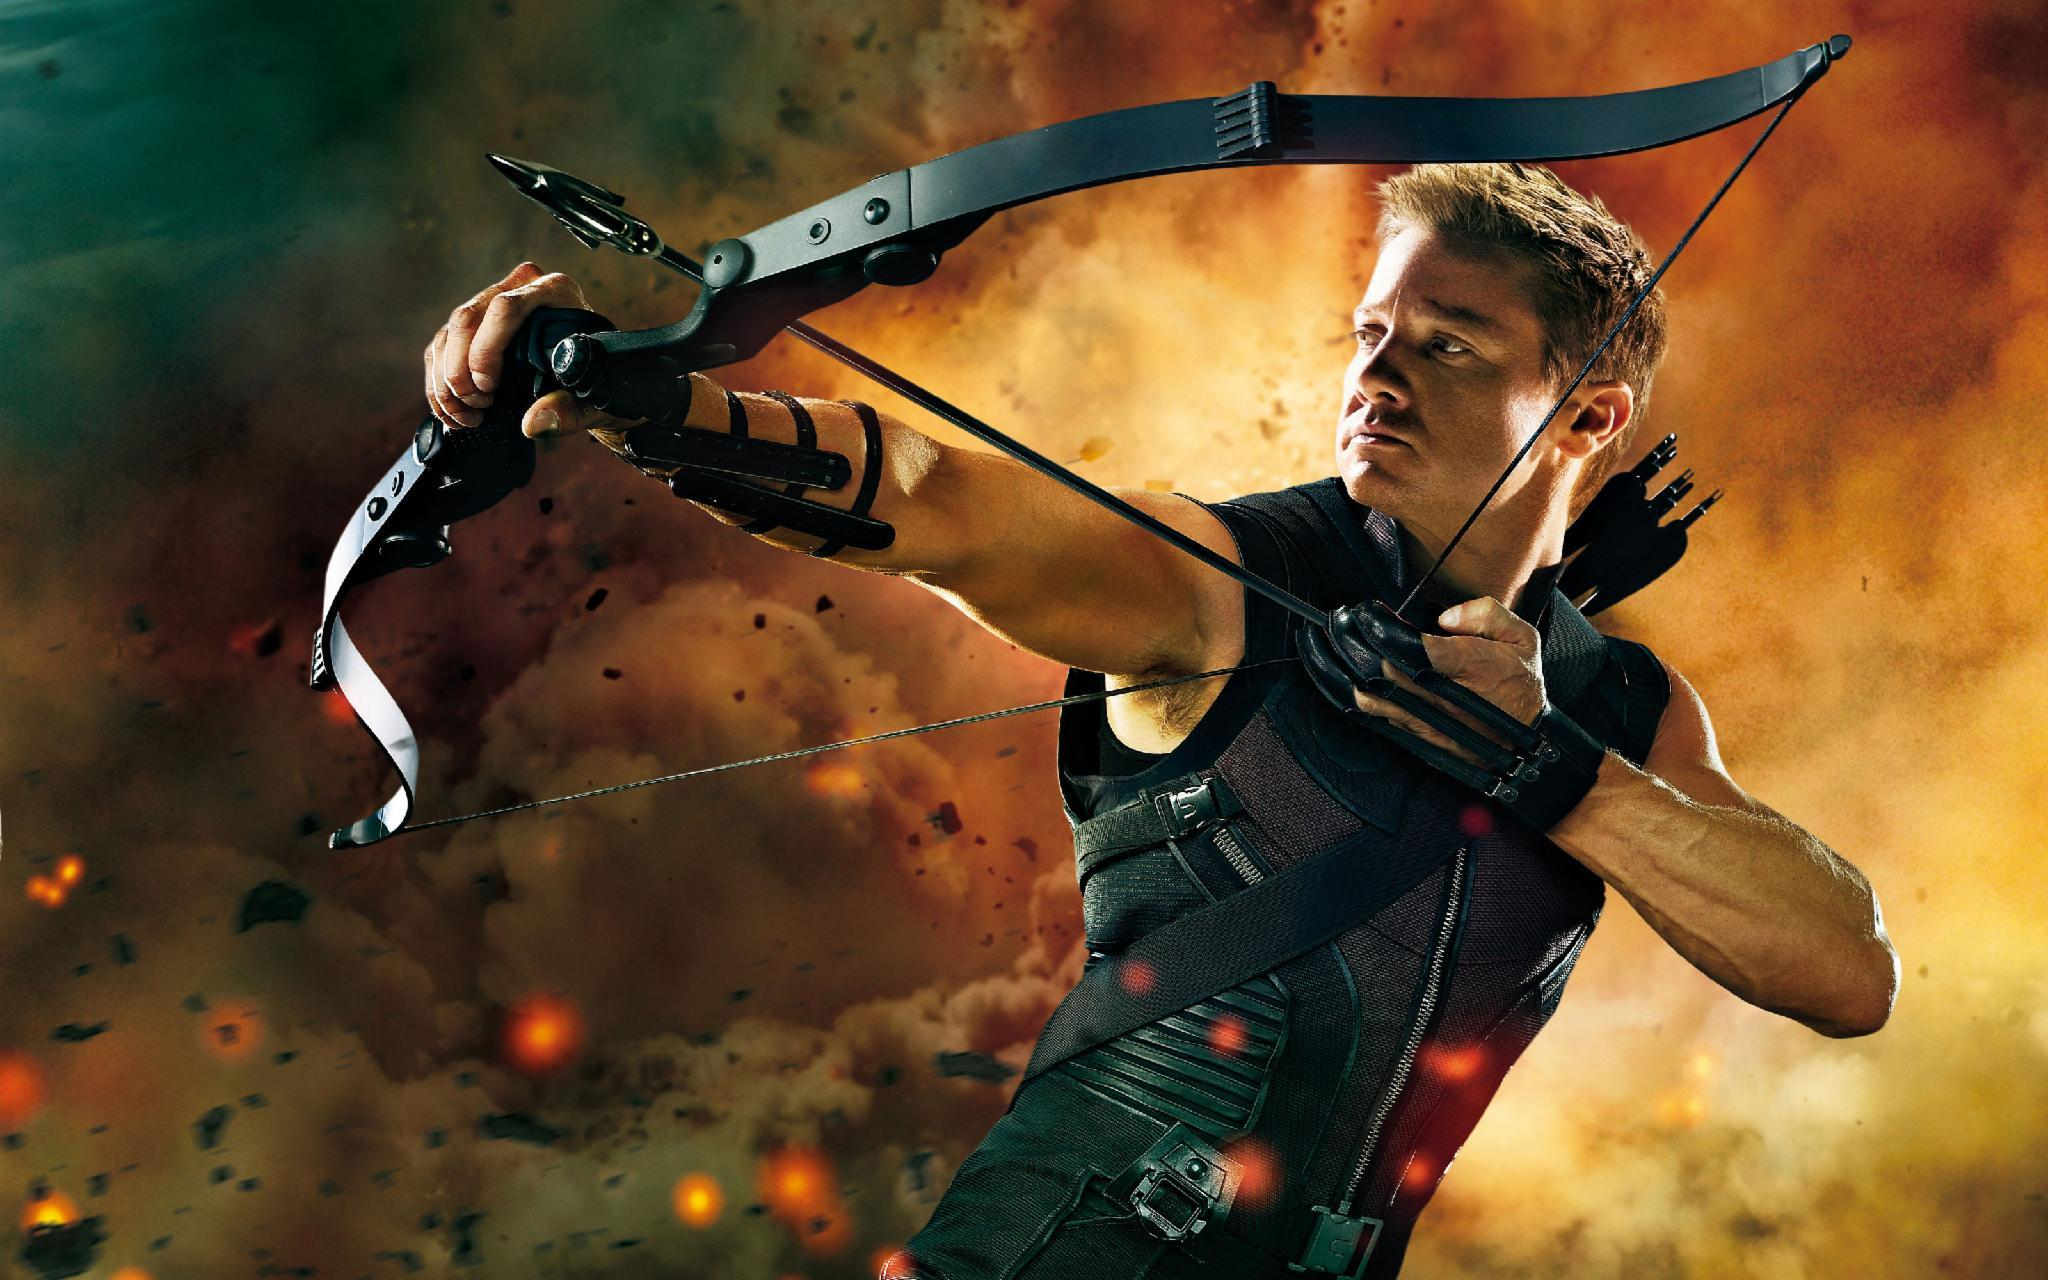 I Avengers Awesome? Or Hunger Games?